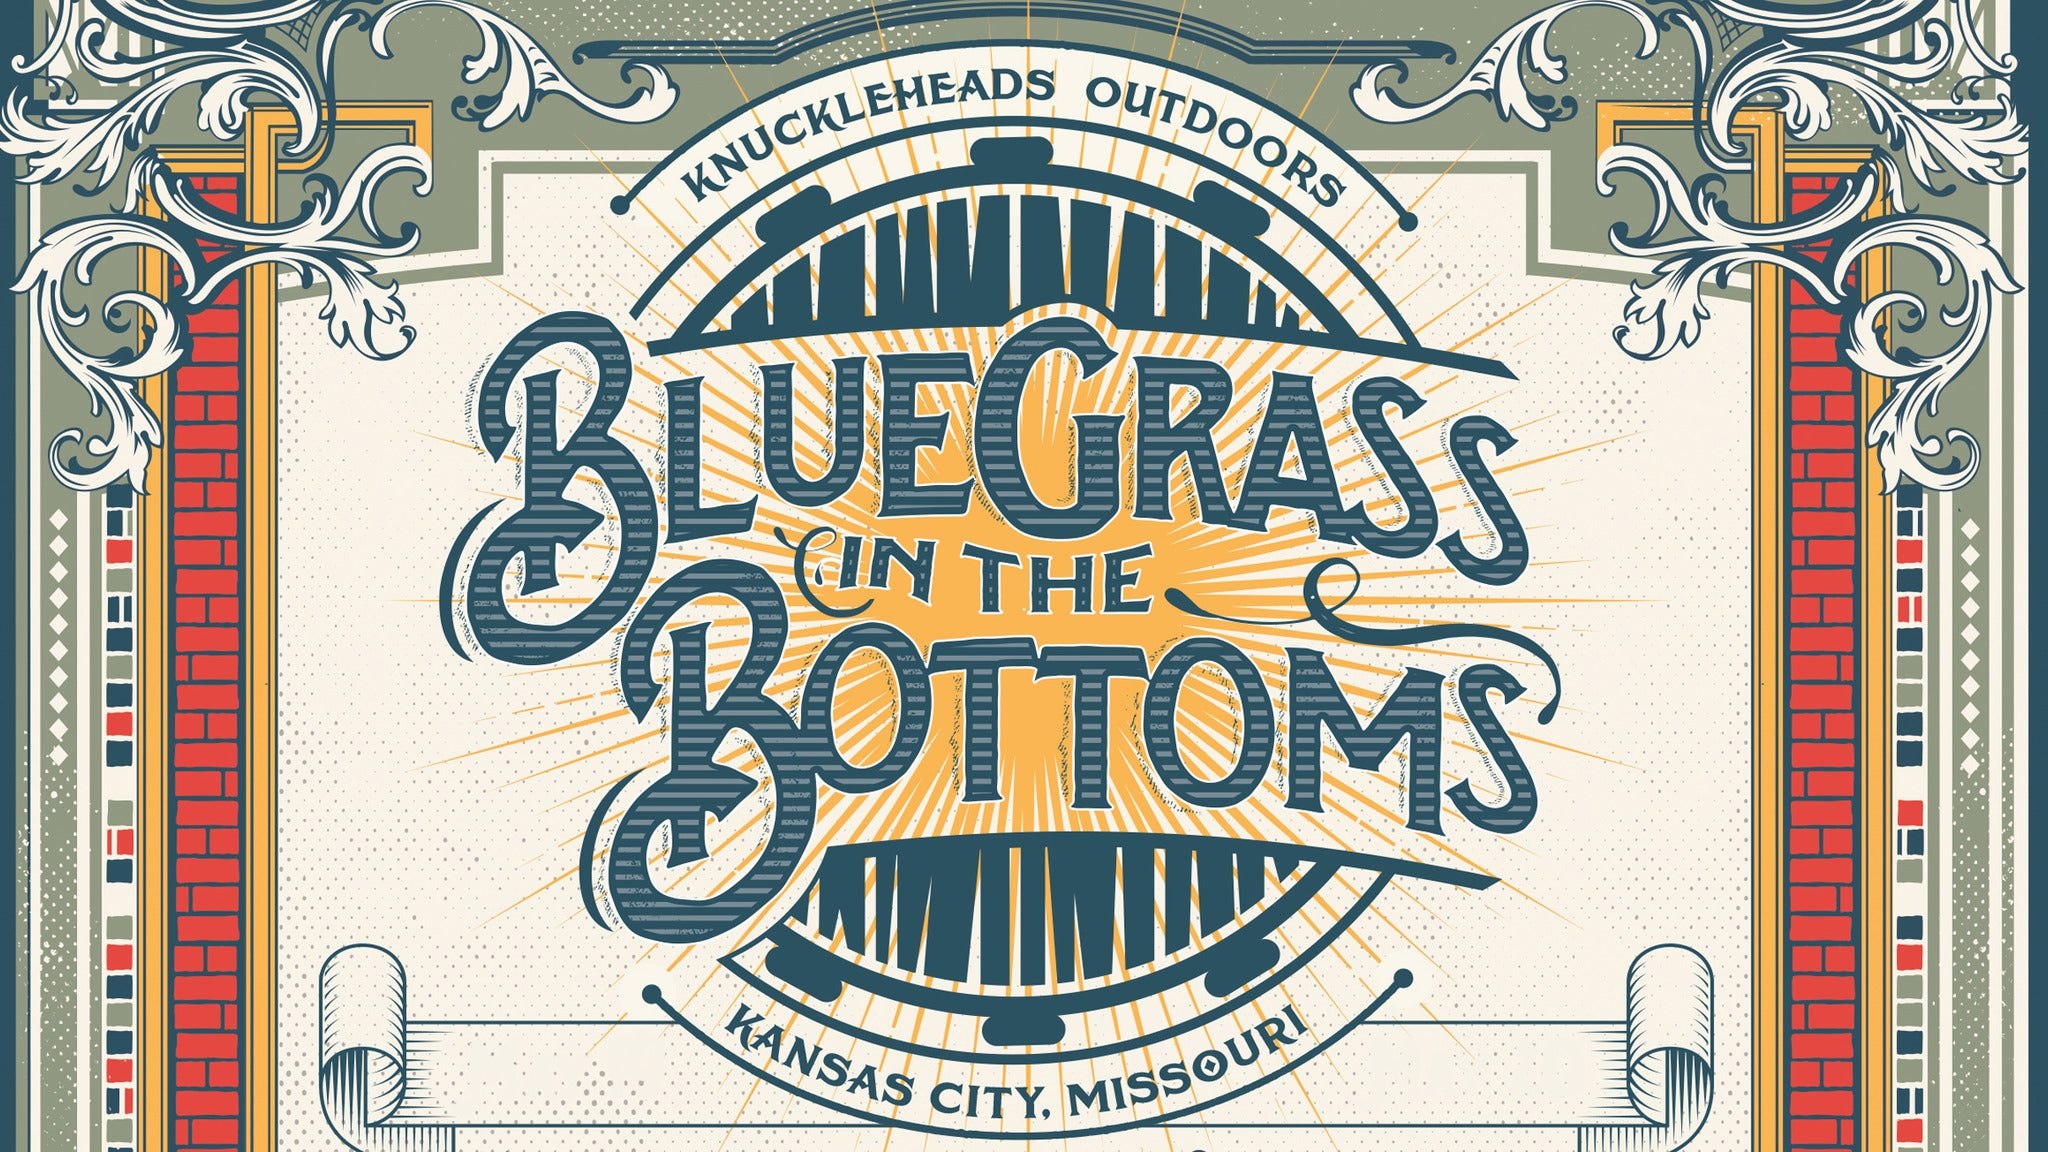 Bluegrass in the Bottoms